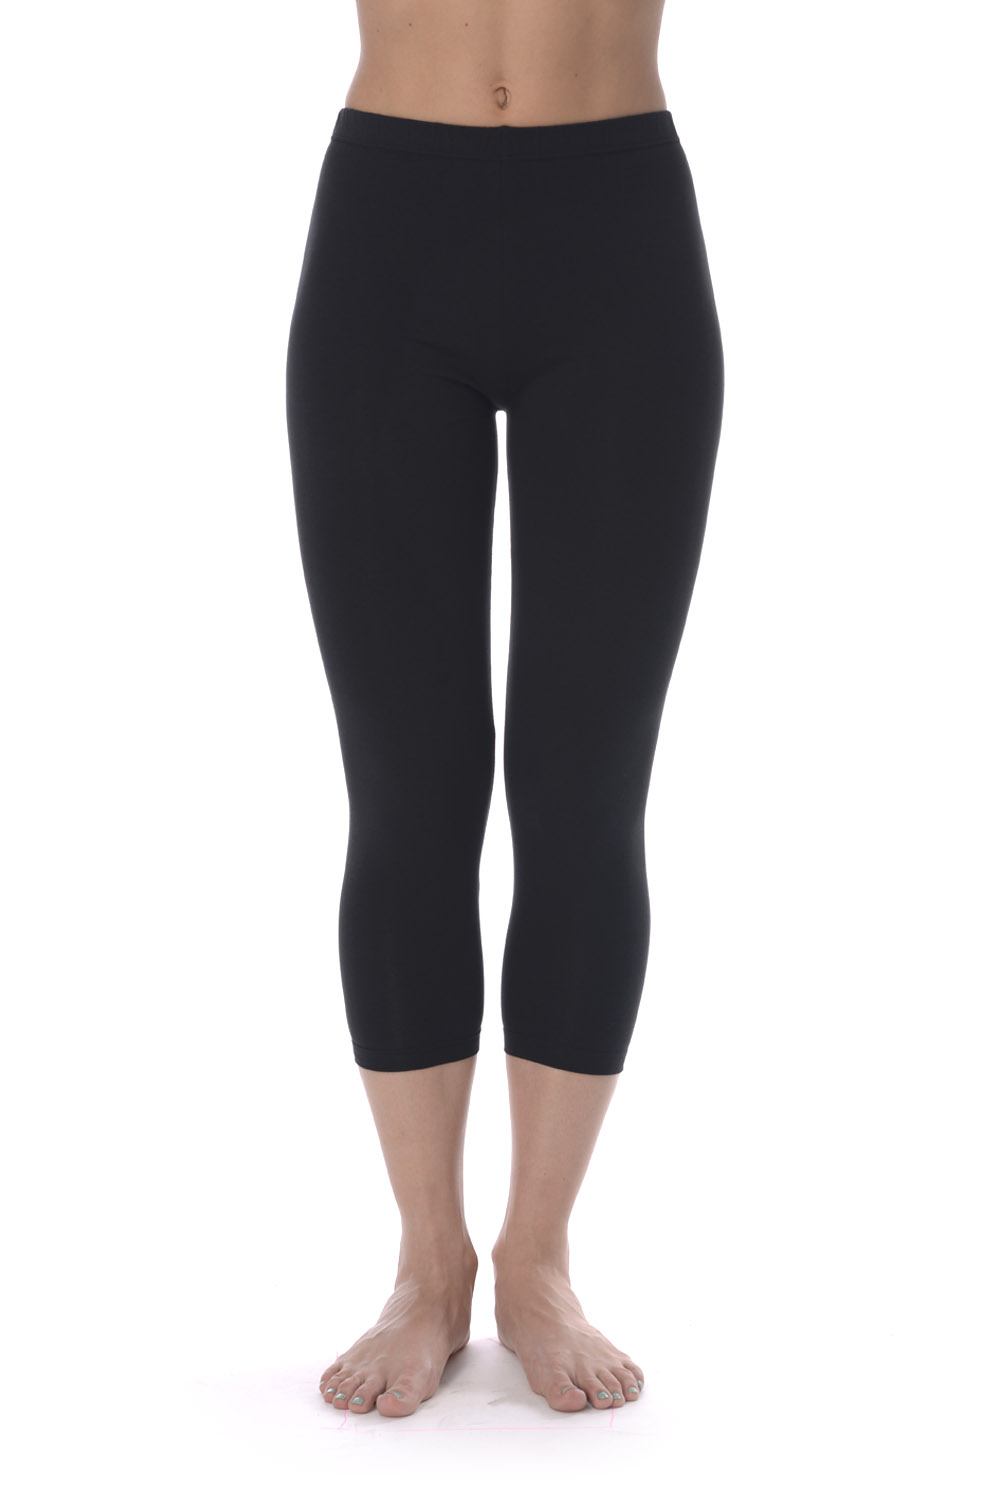 Leggings VIS-A-VIS SLL1002  Cotton Black TmallFS stirrup mesh leggings